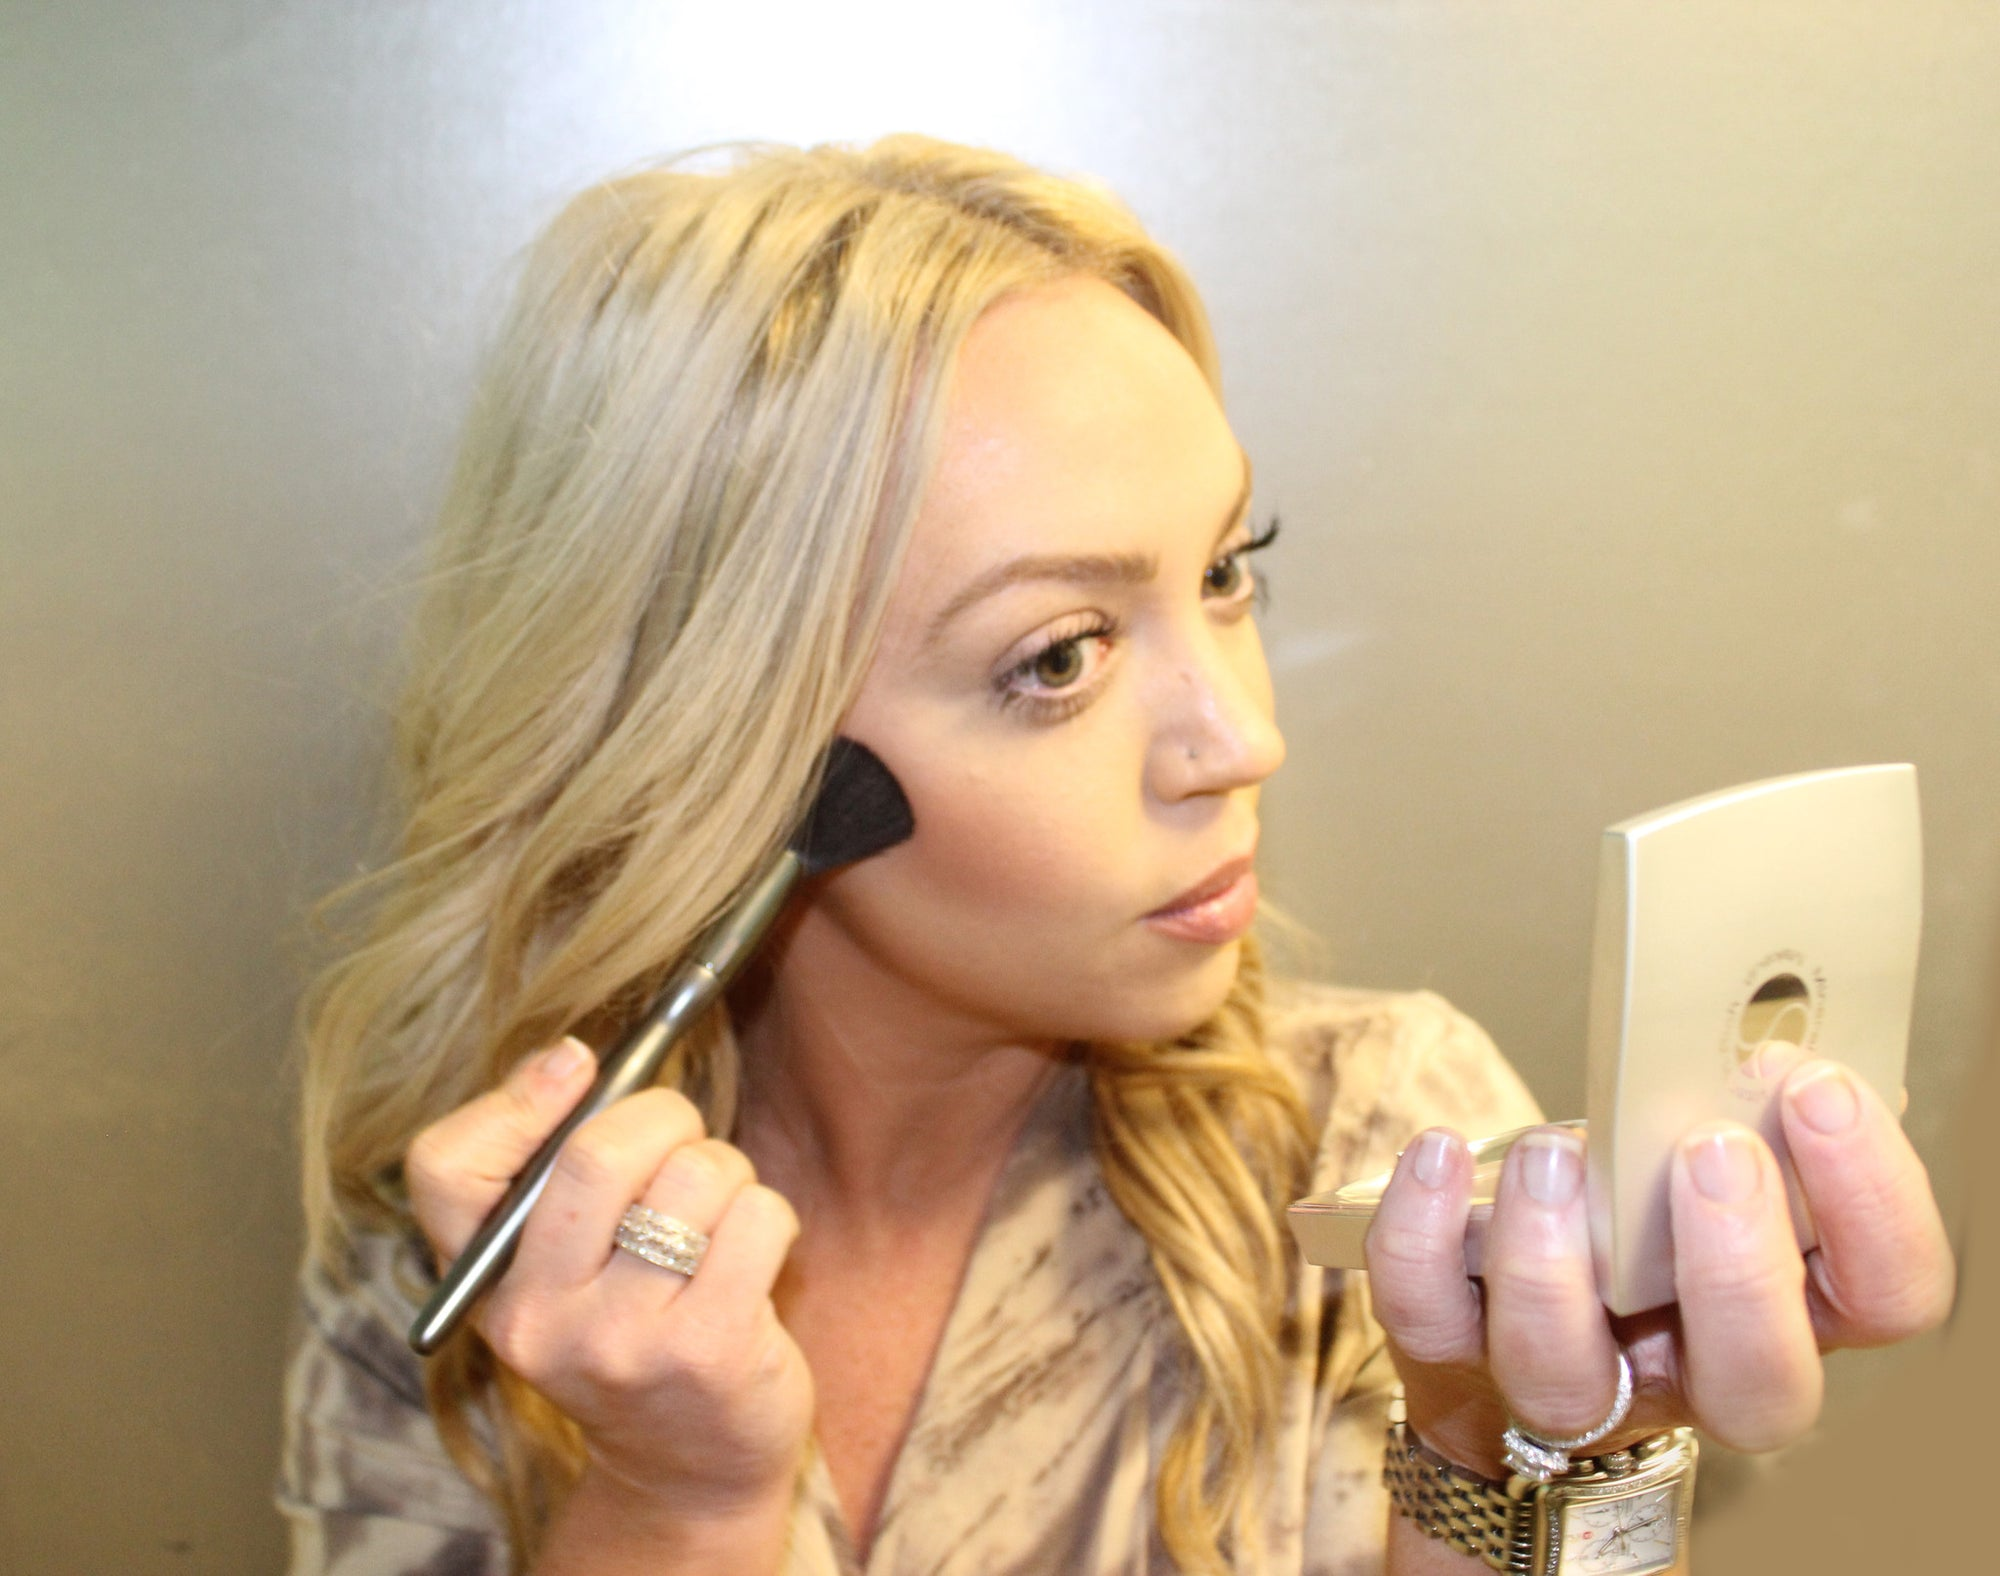 The Easy Face Diet – Contouring